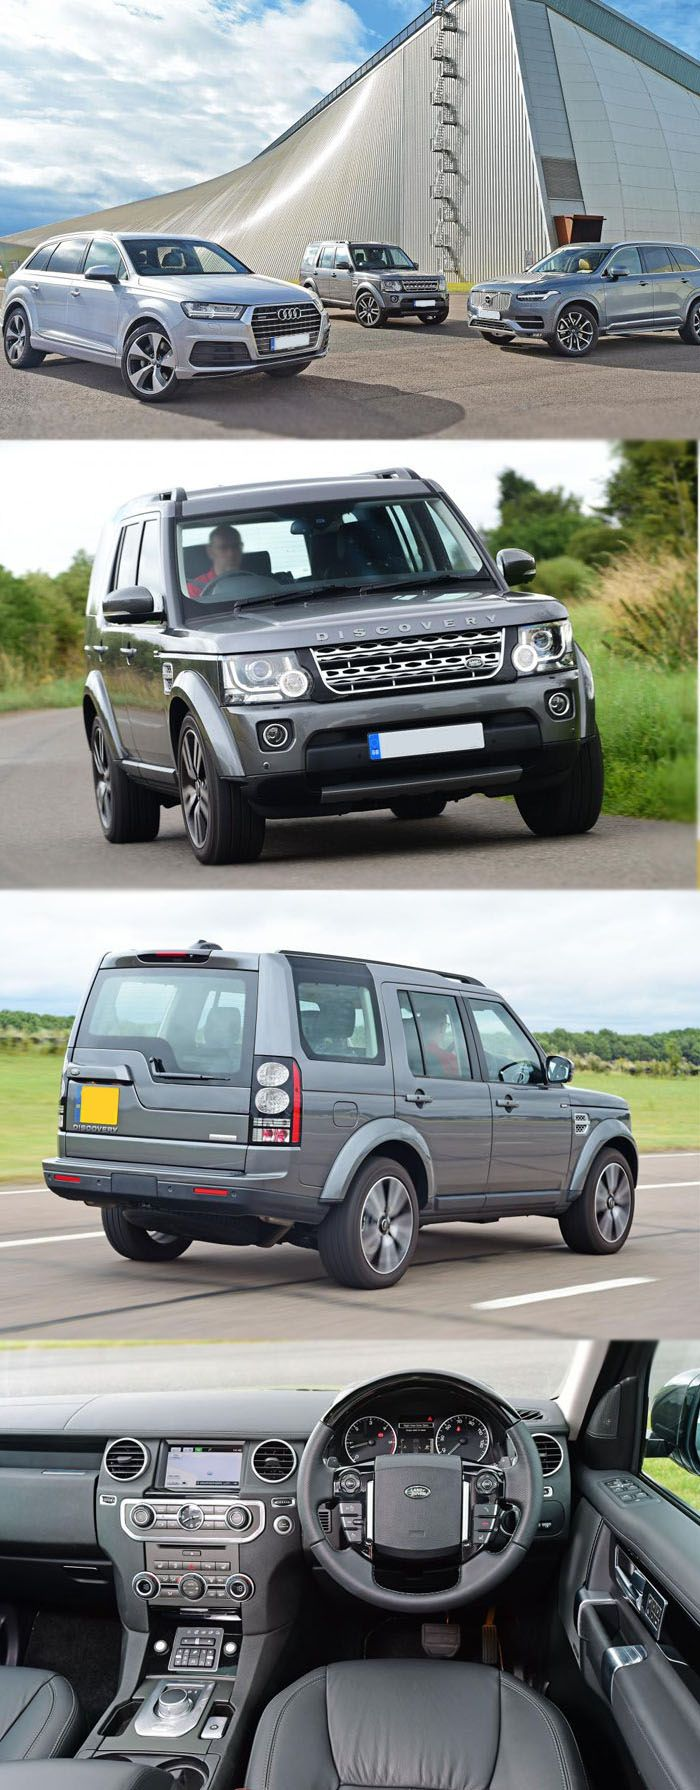 New Land Rover Discovery to beat Volvo XC90 and Audi Q7 For more detail:http://buygearboxesataffordablepricesinuk.blogspot.co.uk/2016/04/new-land-rover-discovery-to-beat-volvo.html